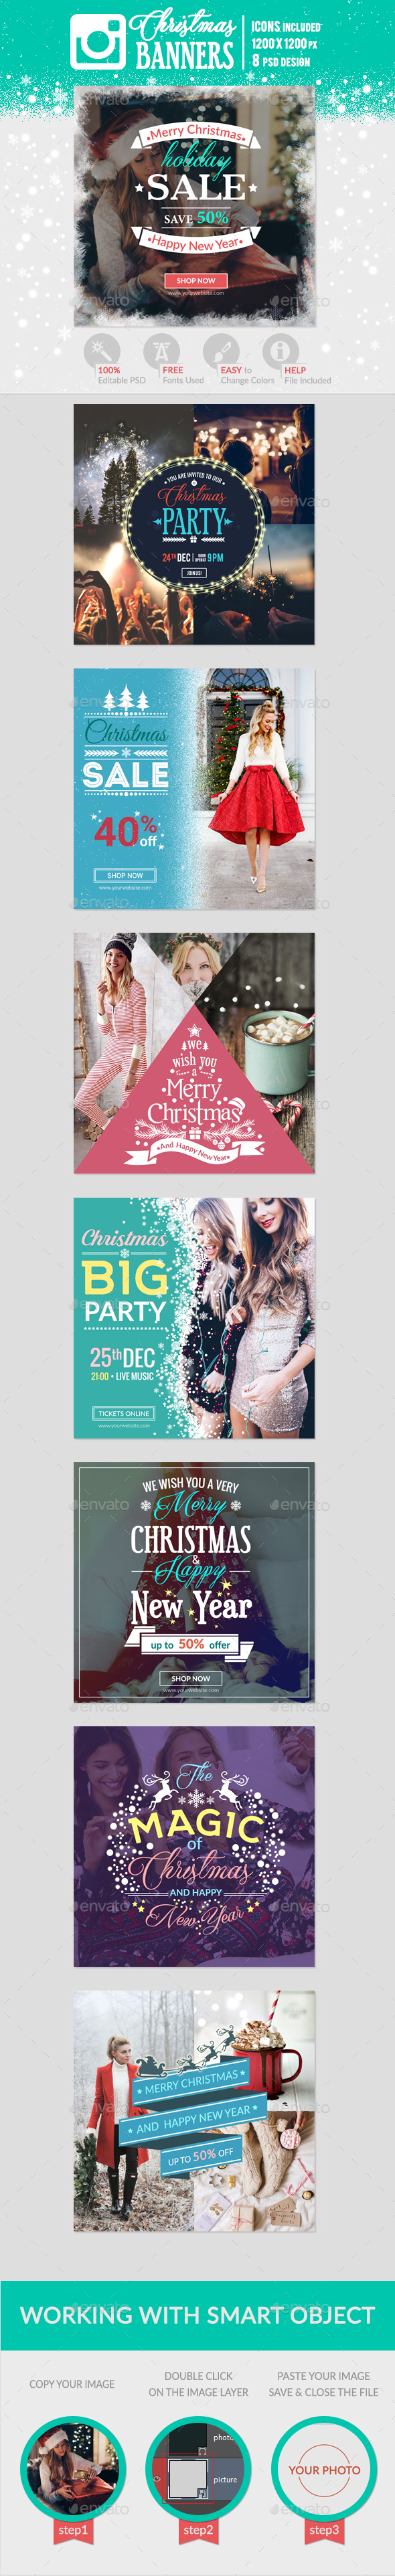 Instagram Christmas Banners - Banners & Ads Web Elements